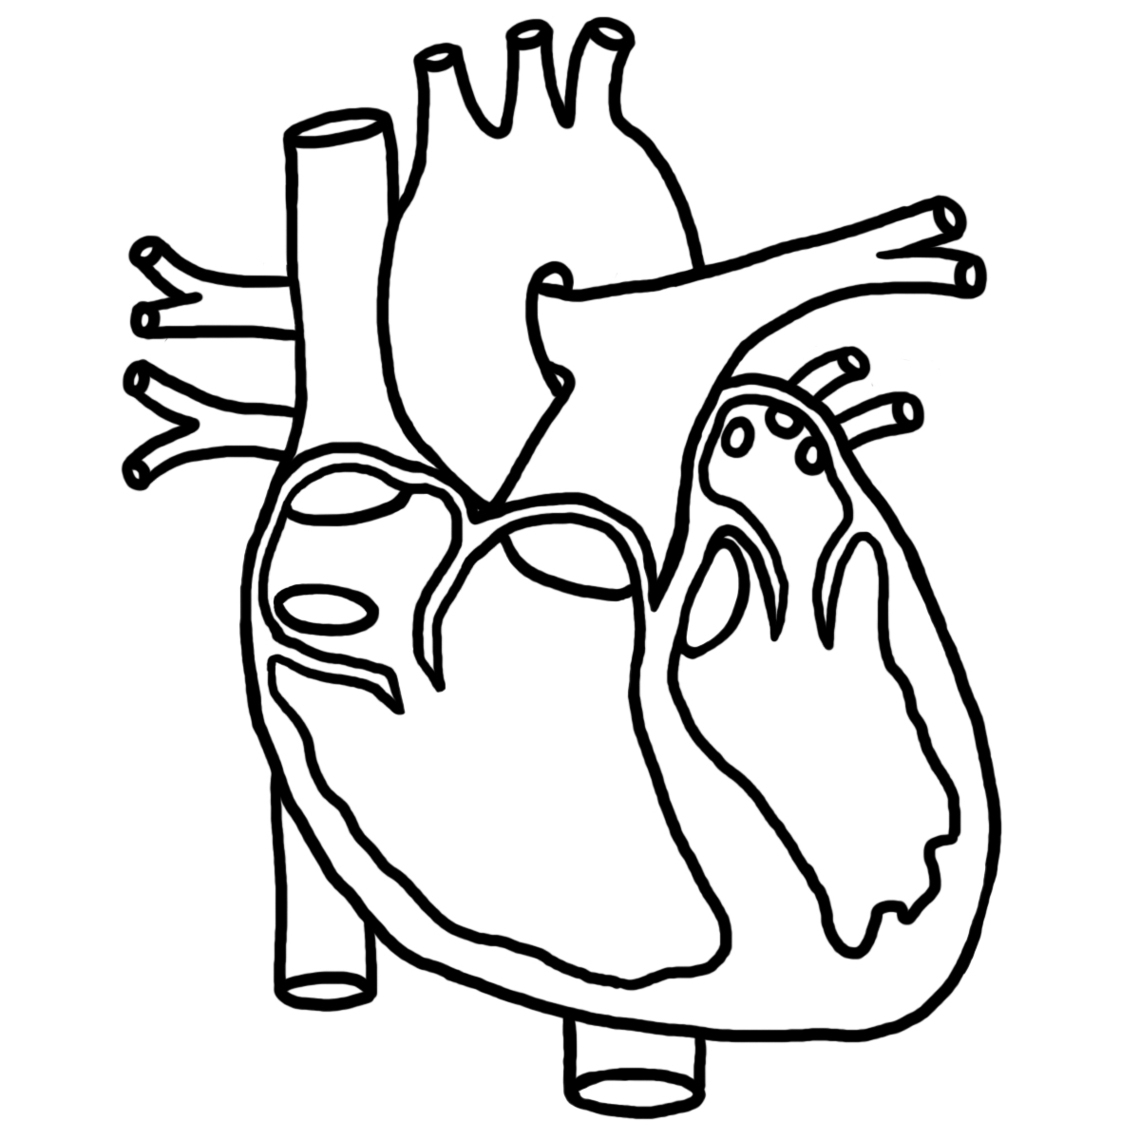 Diagram black and white. Body clipart heart